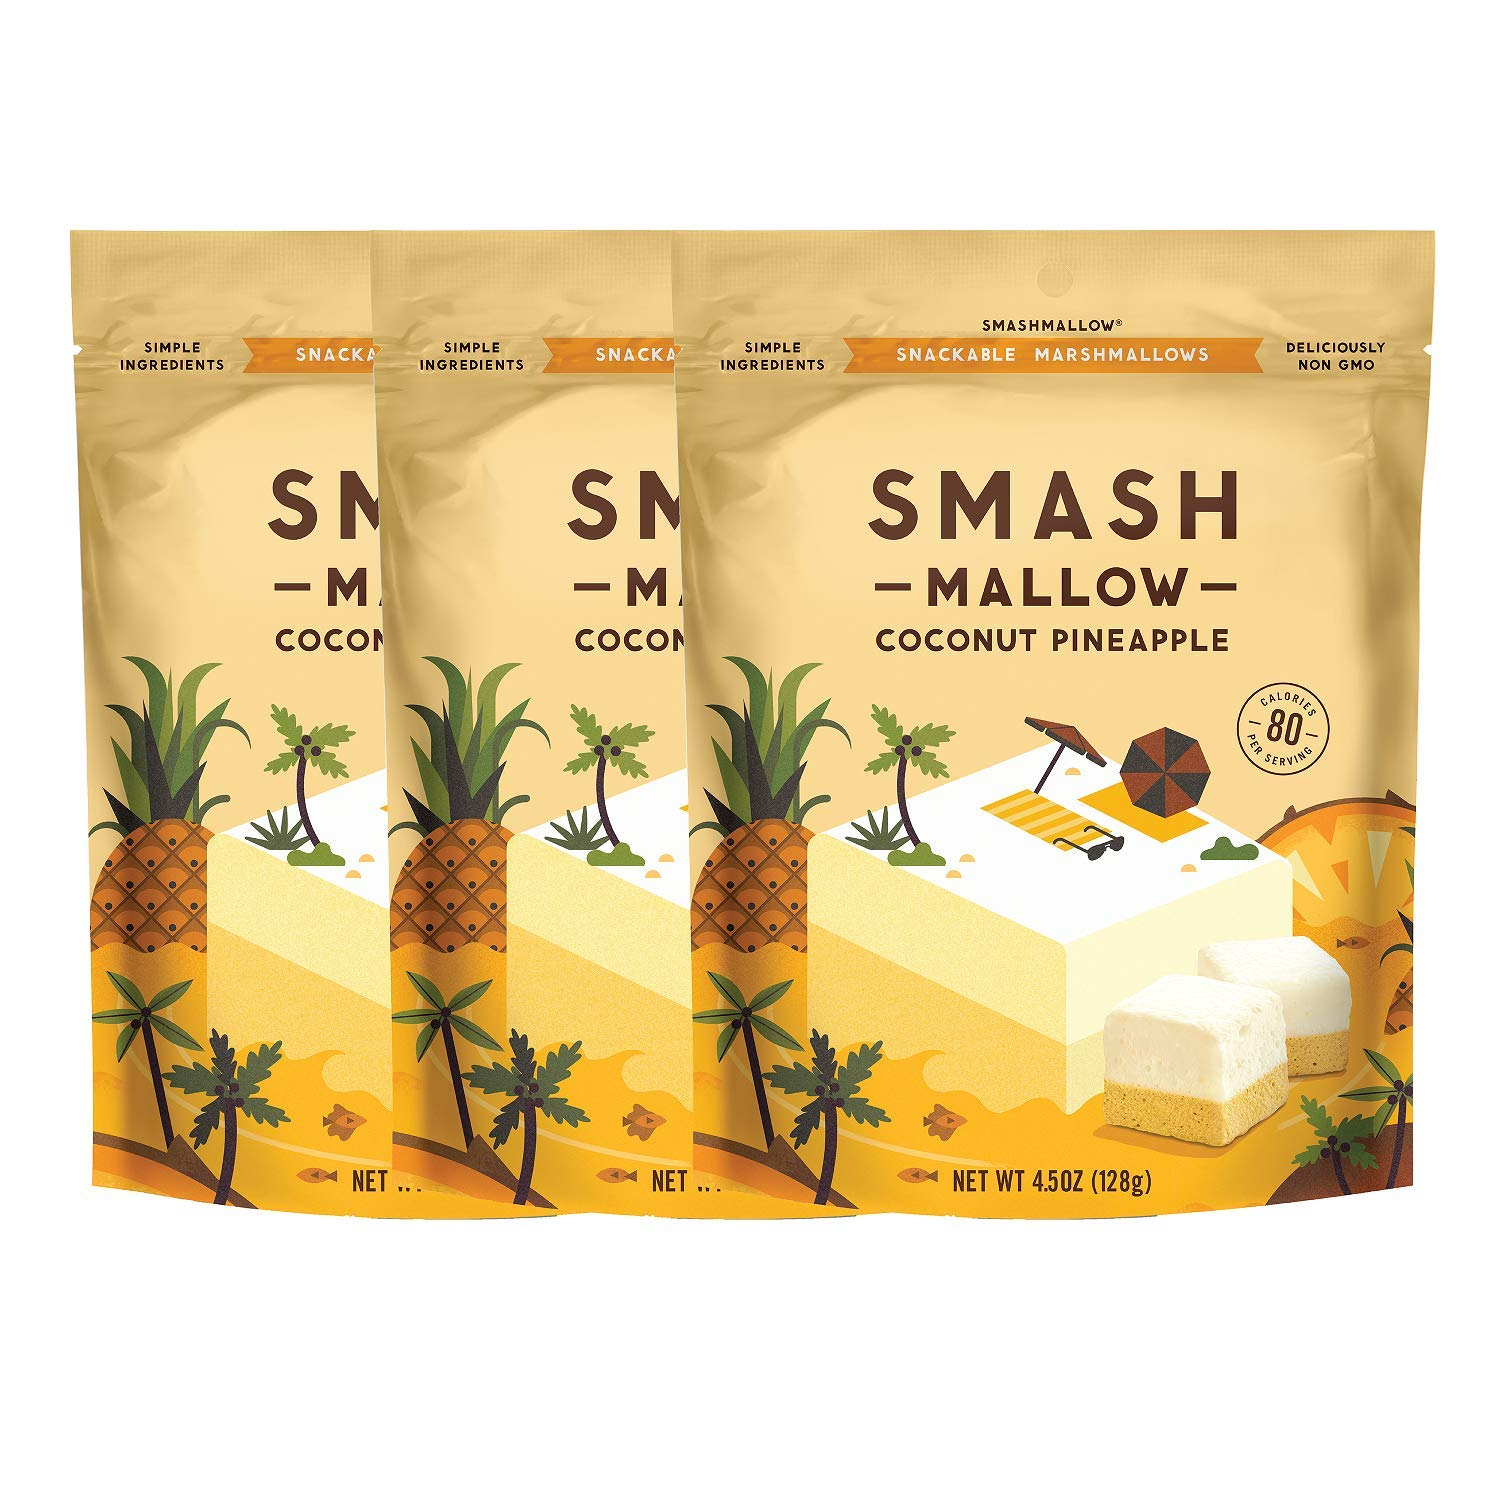 Coconut Pineapple by SMASHMALLOW | Snackable Marshmallows | Non-GMO | Organic Cane Sugar | 100 Calories | Pack of 3 (4.5 Ounces each Pack) by Smashmallow